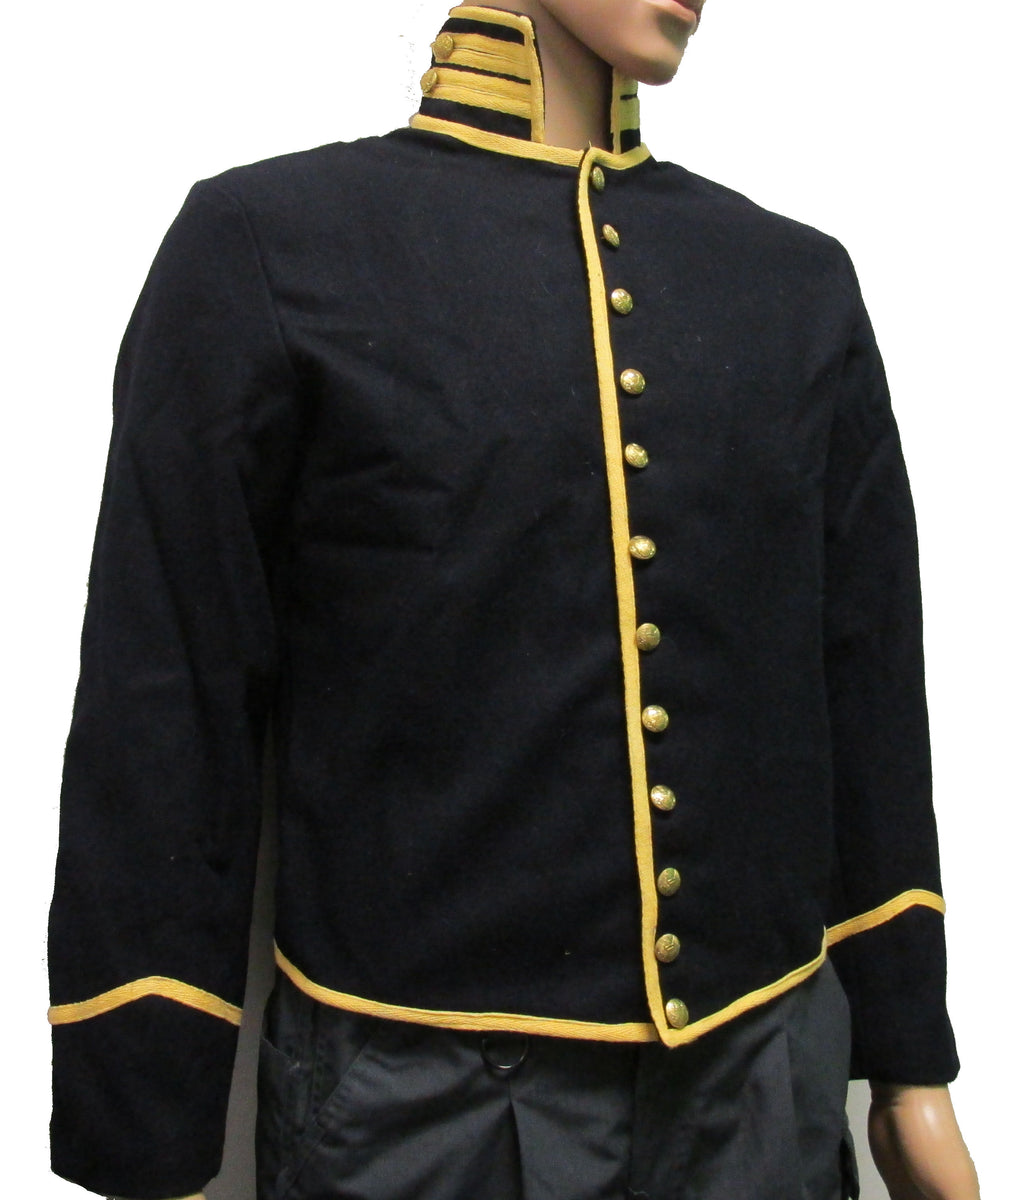 Civil War Uniforms and Accessories | Reenactment Uniforms